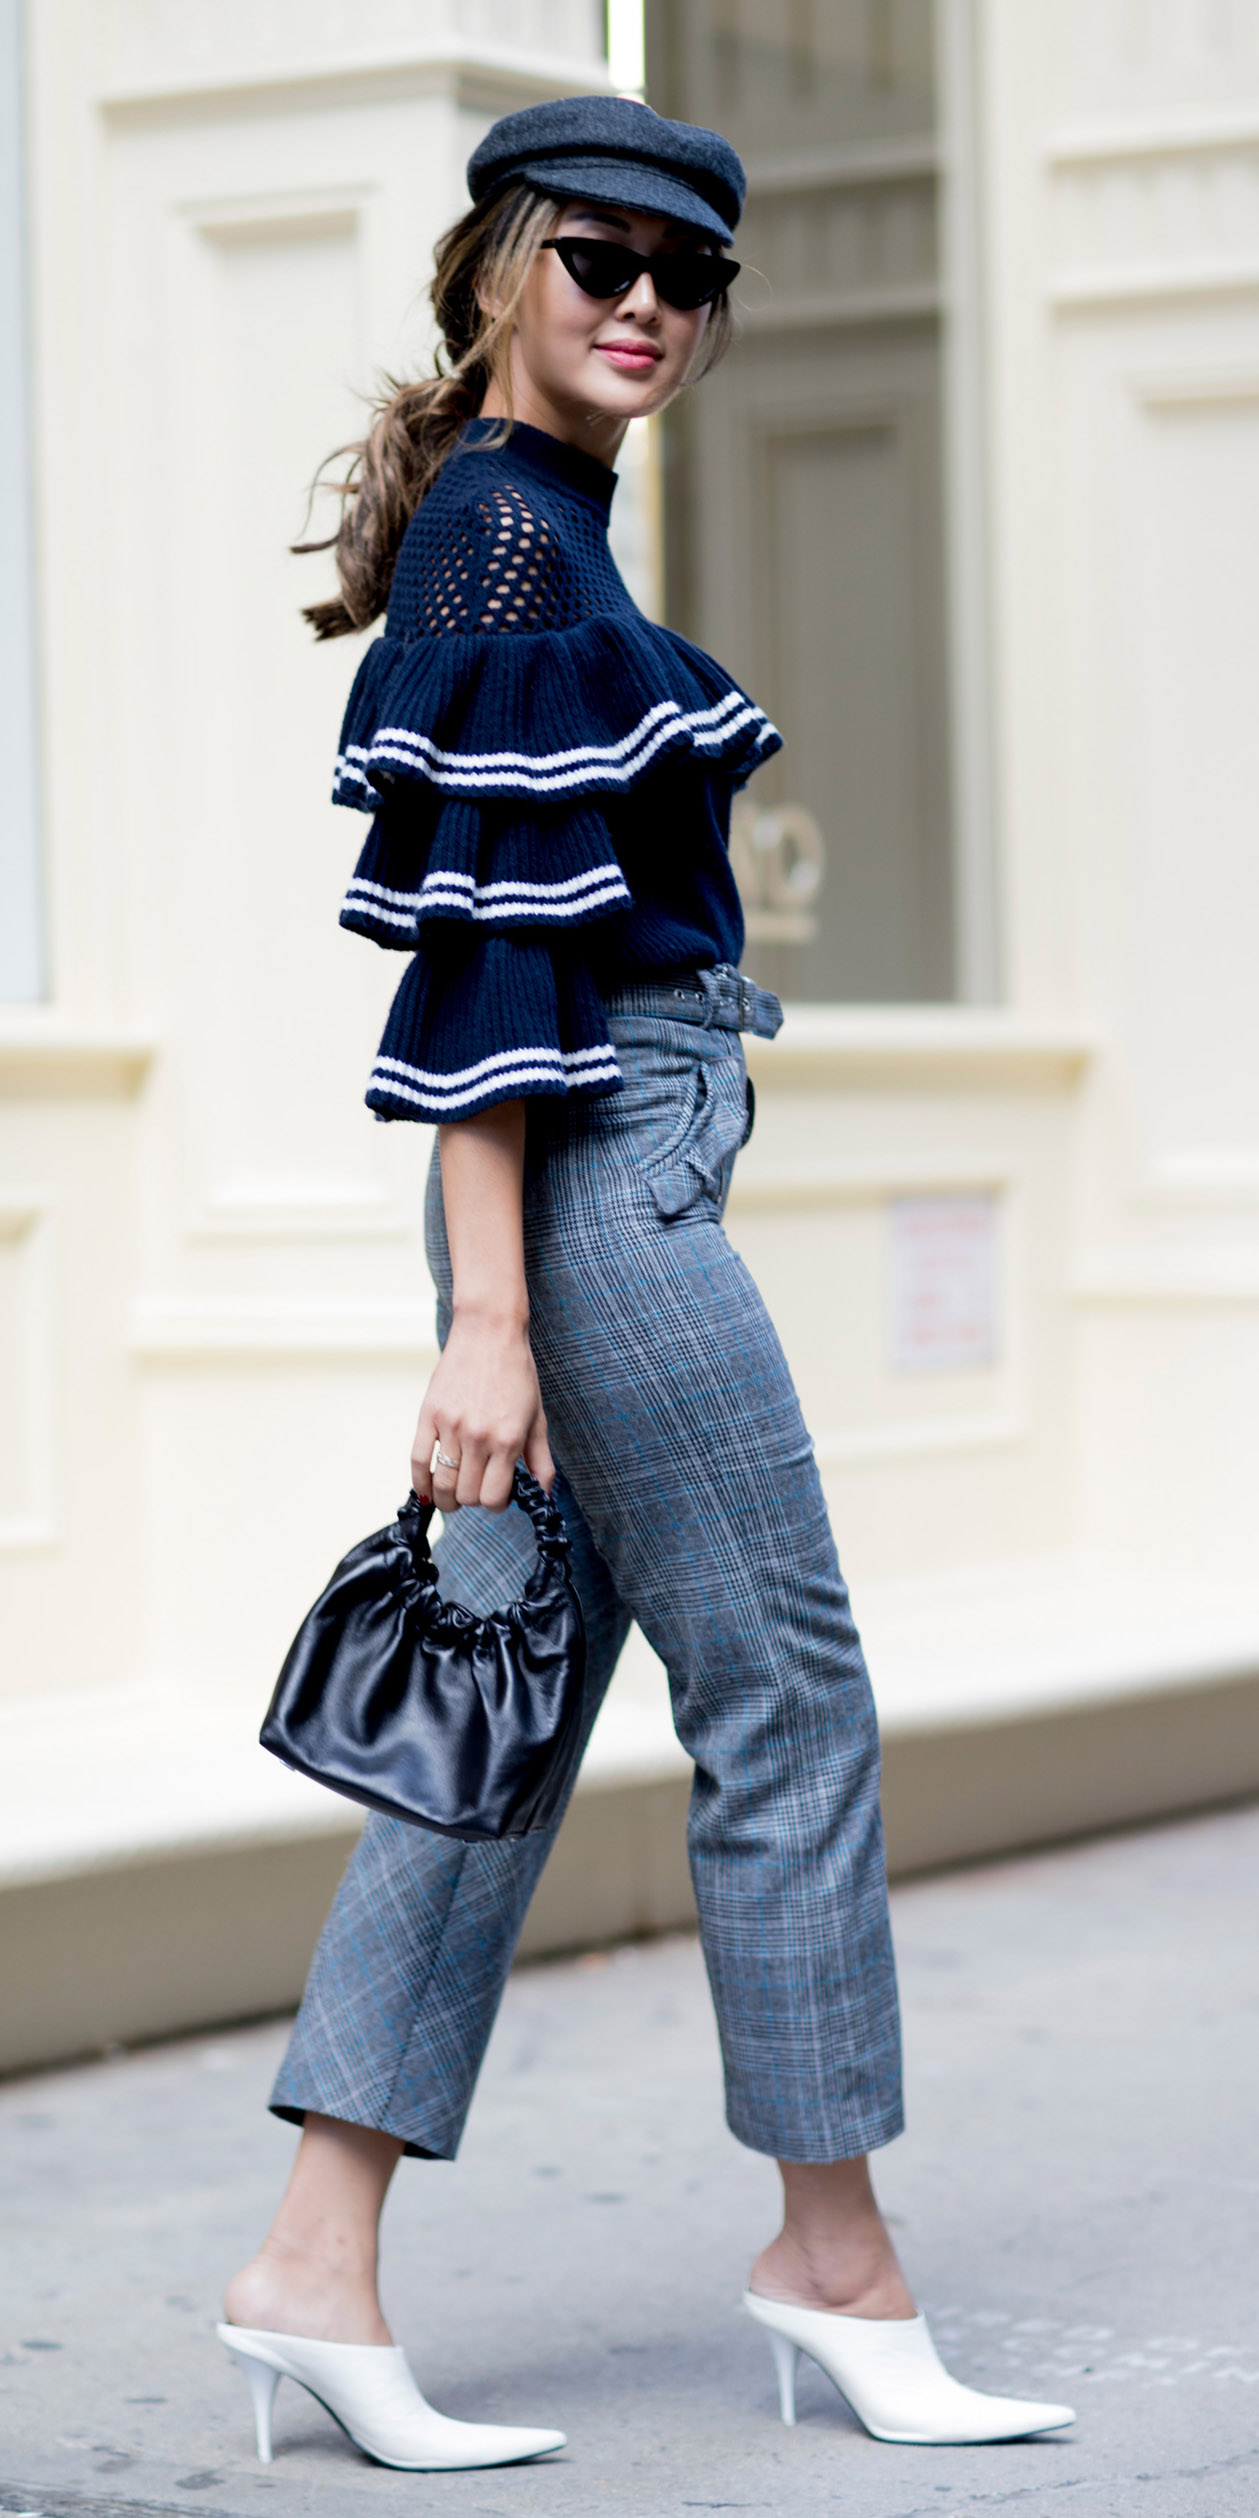 blue-navy-sweater-ruffle-tiered-pony-hairr-hat-black-bag-white-shoe-pumps-grayl-joggers-pants-fall-winter-lunch.jpg